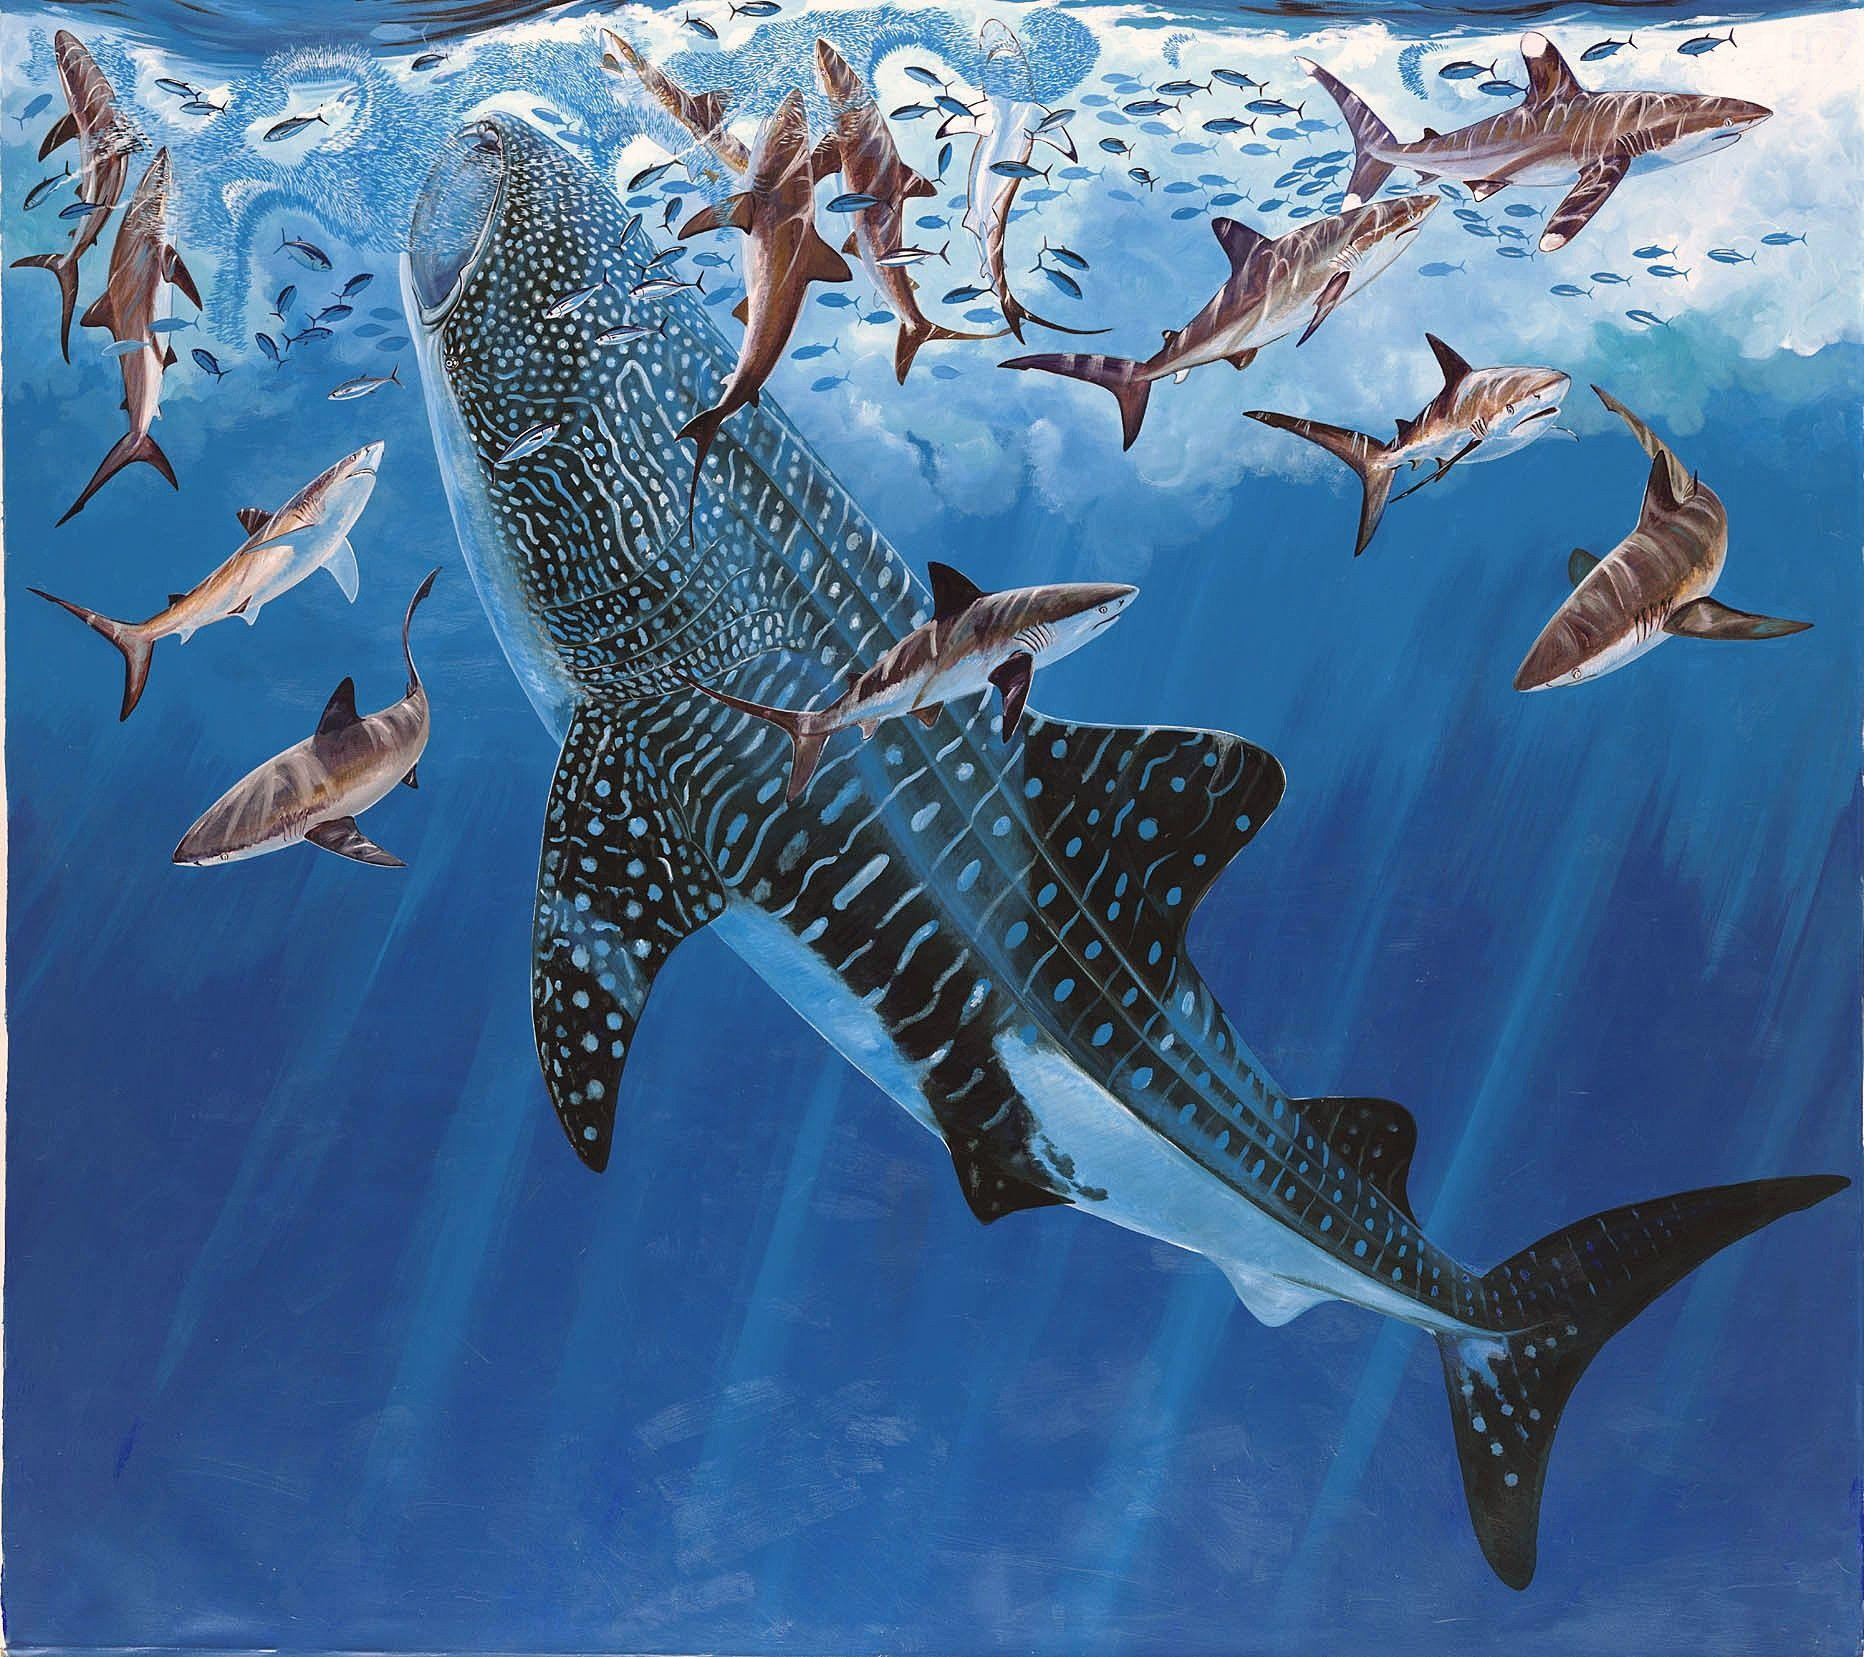 Whale Shark Painting - wallpaper.